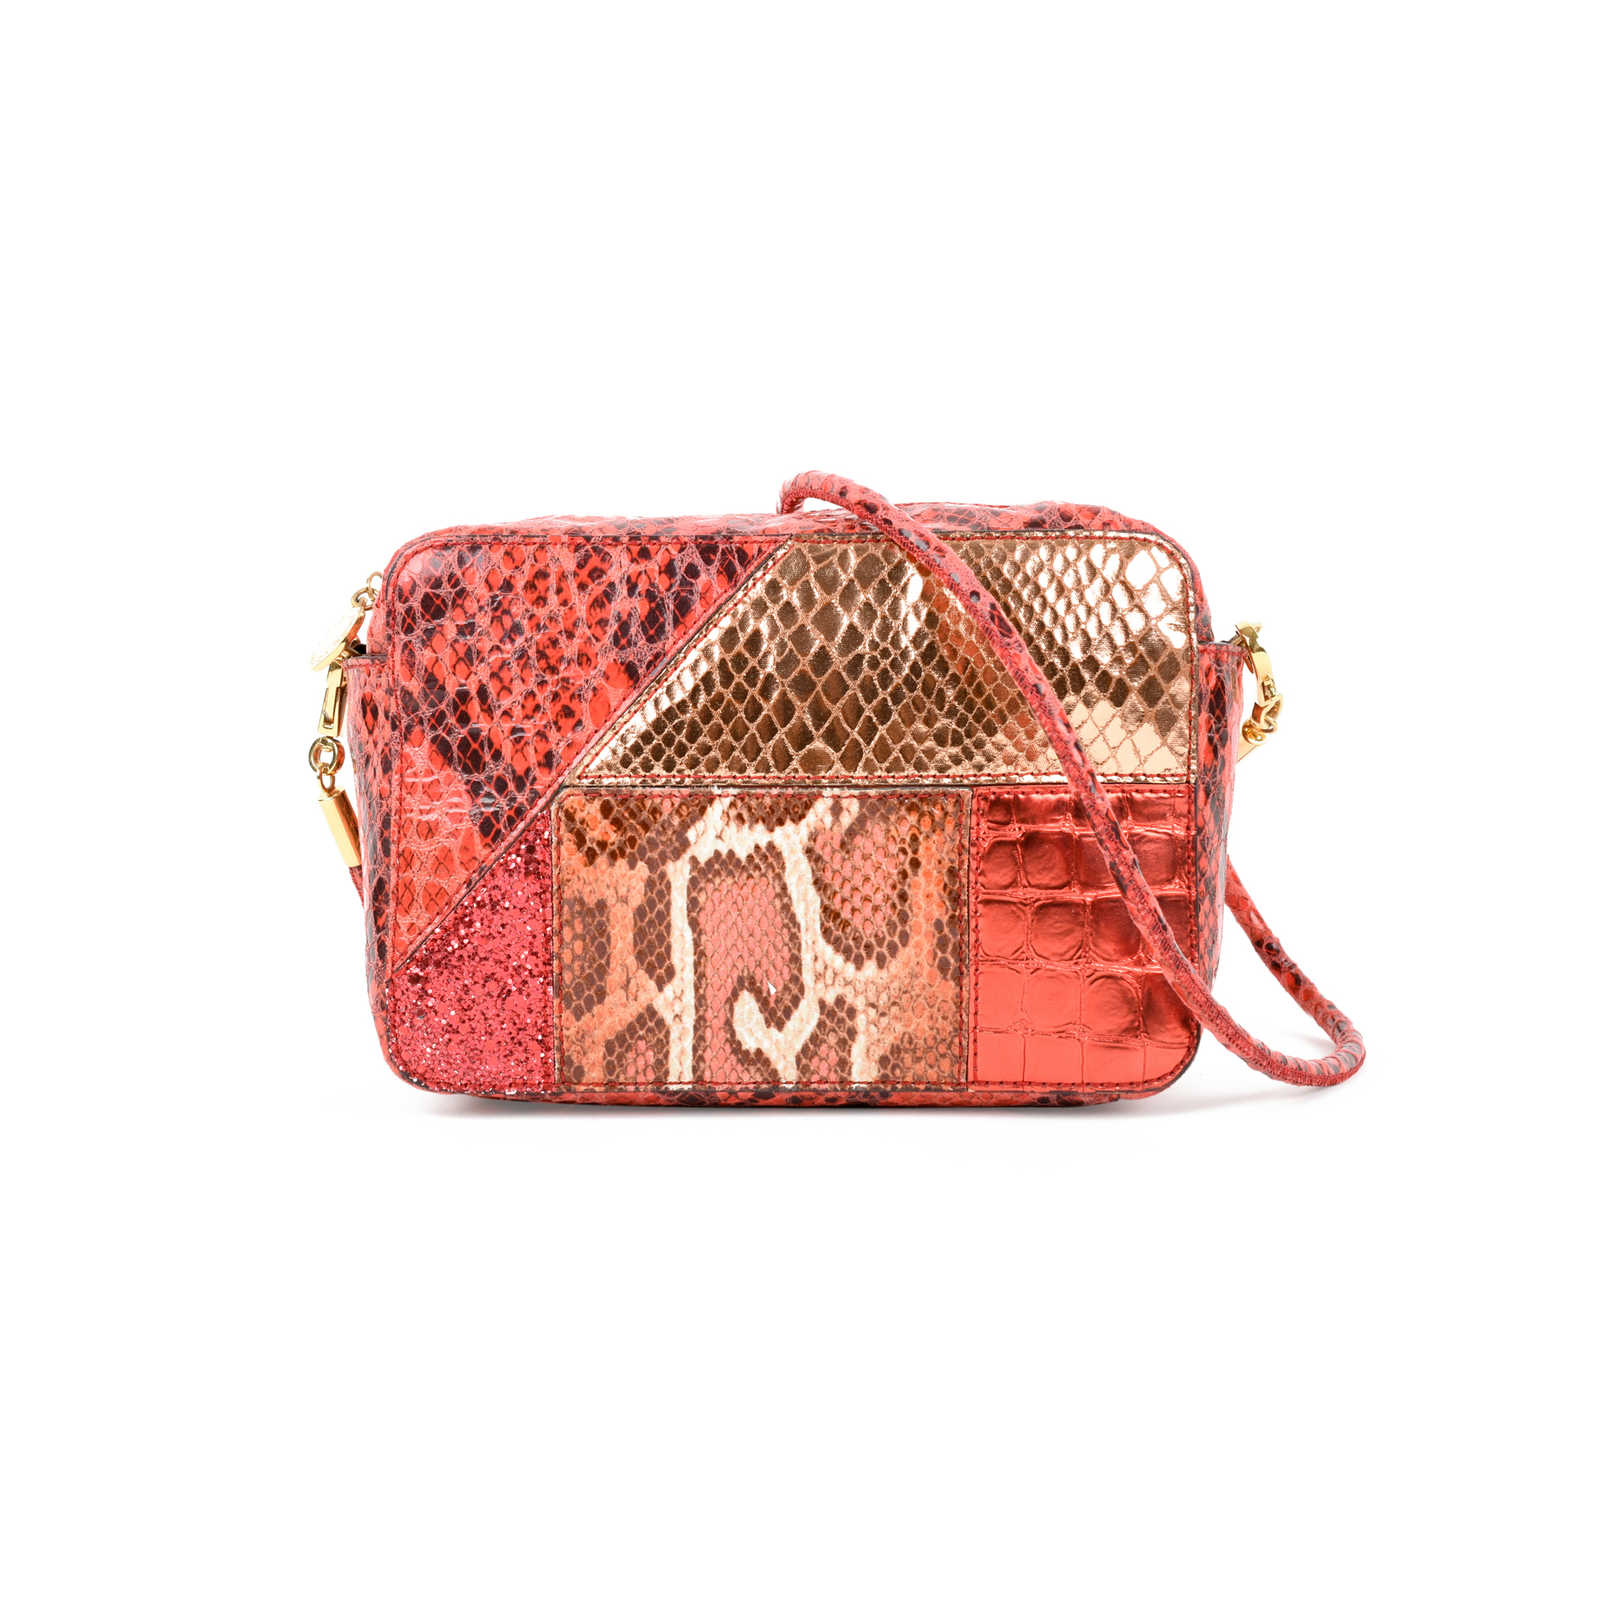 59acab701e52 Authentic Second Hand Stella McCartney Patchwork Faux Python Crossbody Bag  (PSS-235-00089 ...